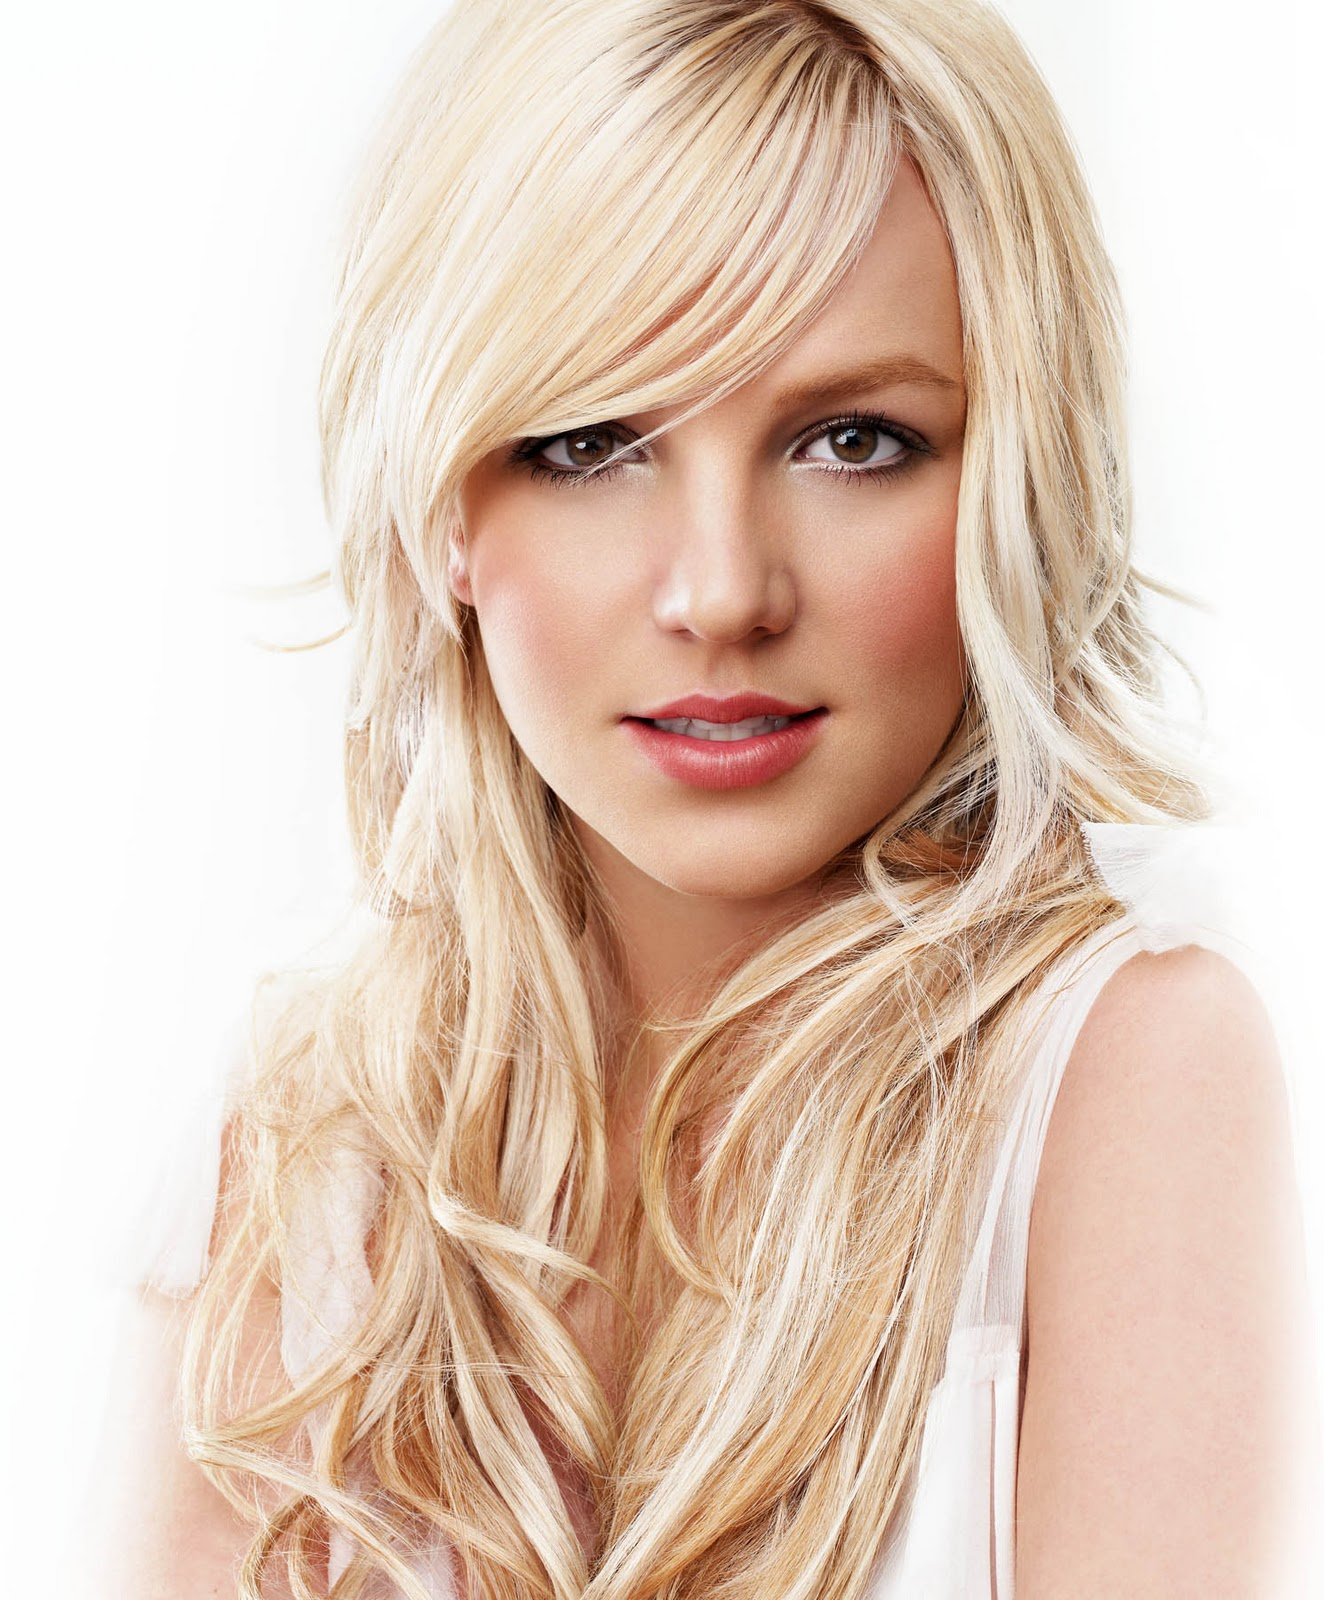 Hairstyle For Men 2014 For Women For Girls For Boys For Round Face